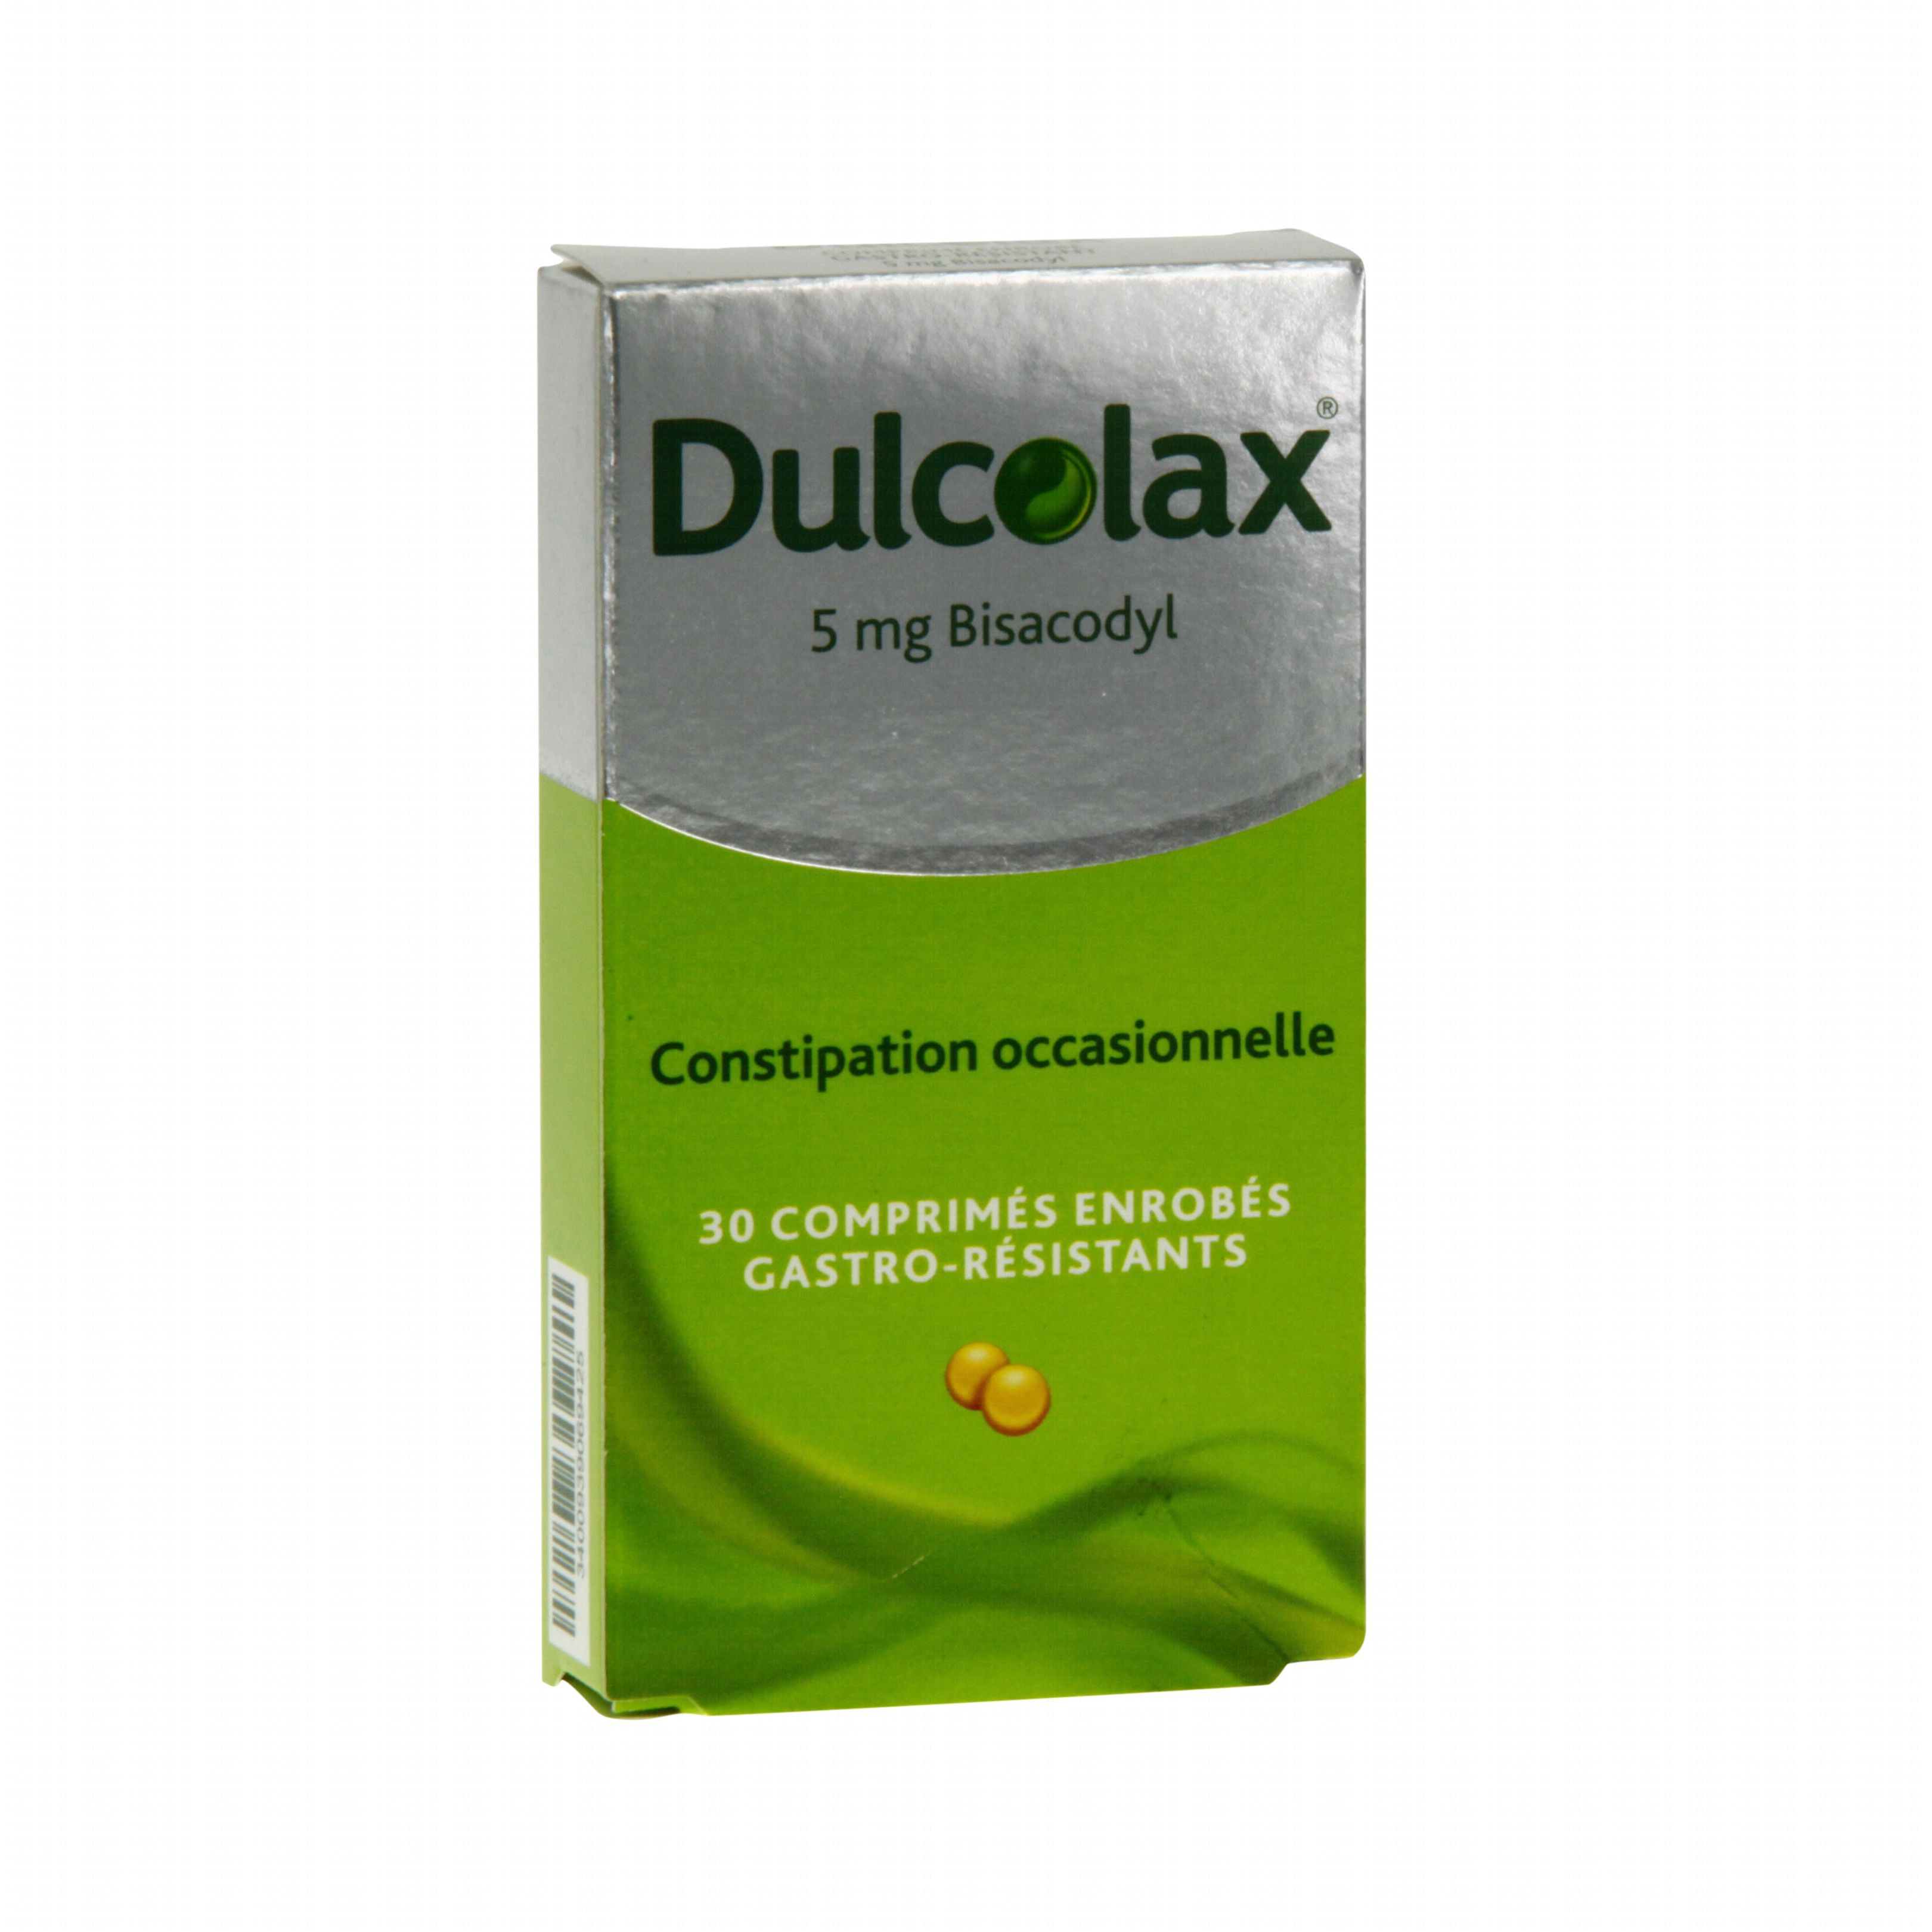 where can i buy dulcolax suppositories